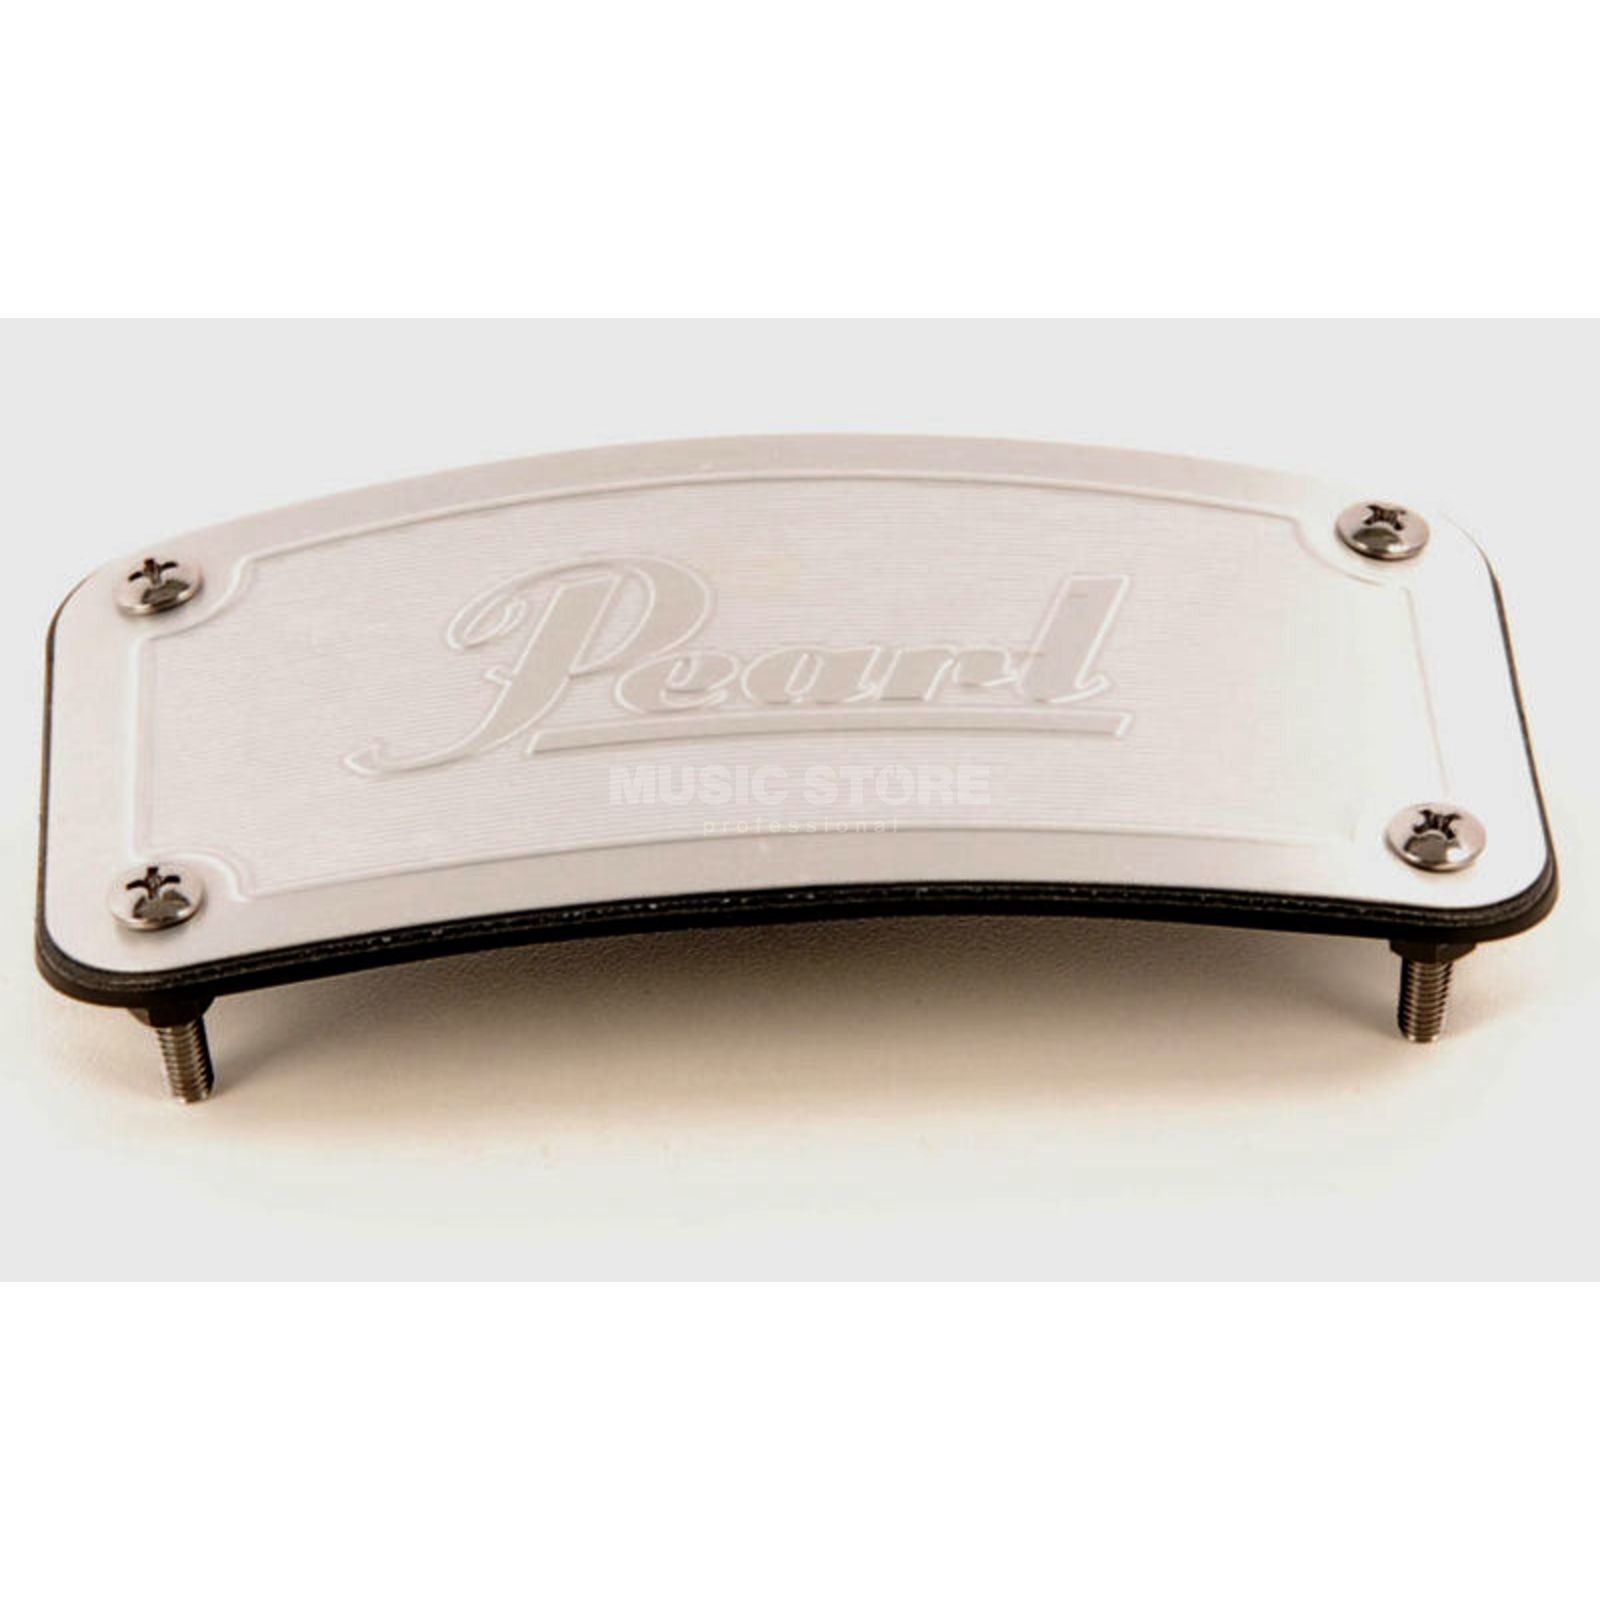 Pearl BBC-1 Masking Plate Cover for Bass Drum Rosette BB-3 Produktbillede